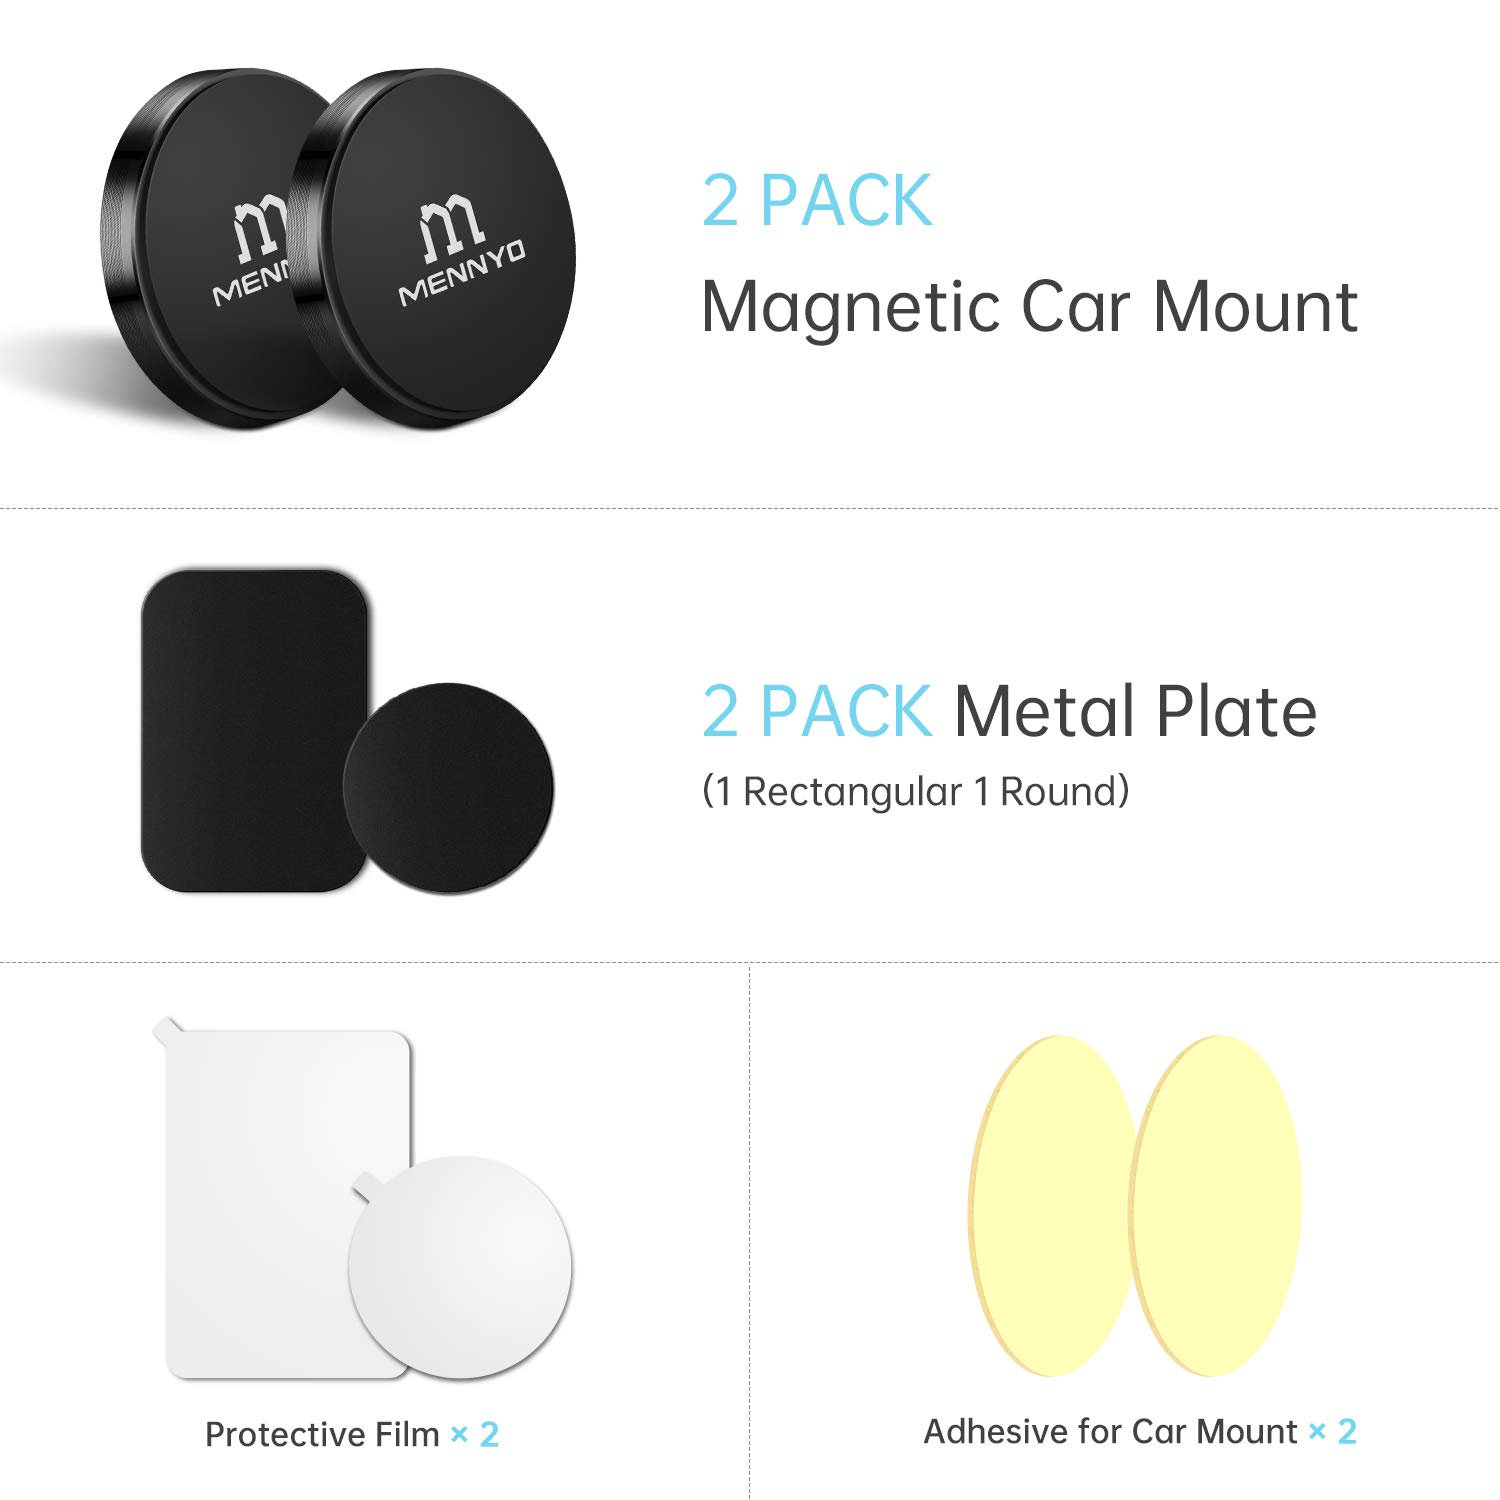 Magnetic Car Mount - 2 Magnet Phone Holders + 2 Adhesive Metal Plates - Universal Flat Stick On Mount Holder for All Phones and Mini Tablets